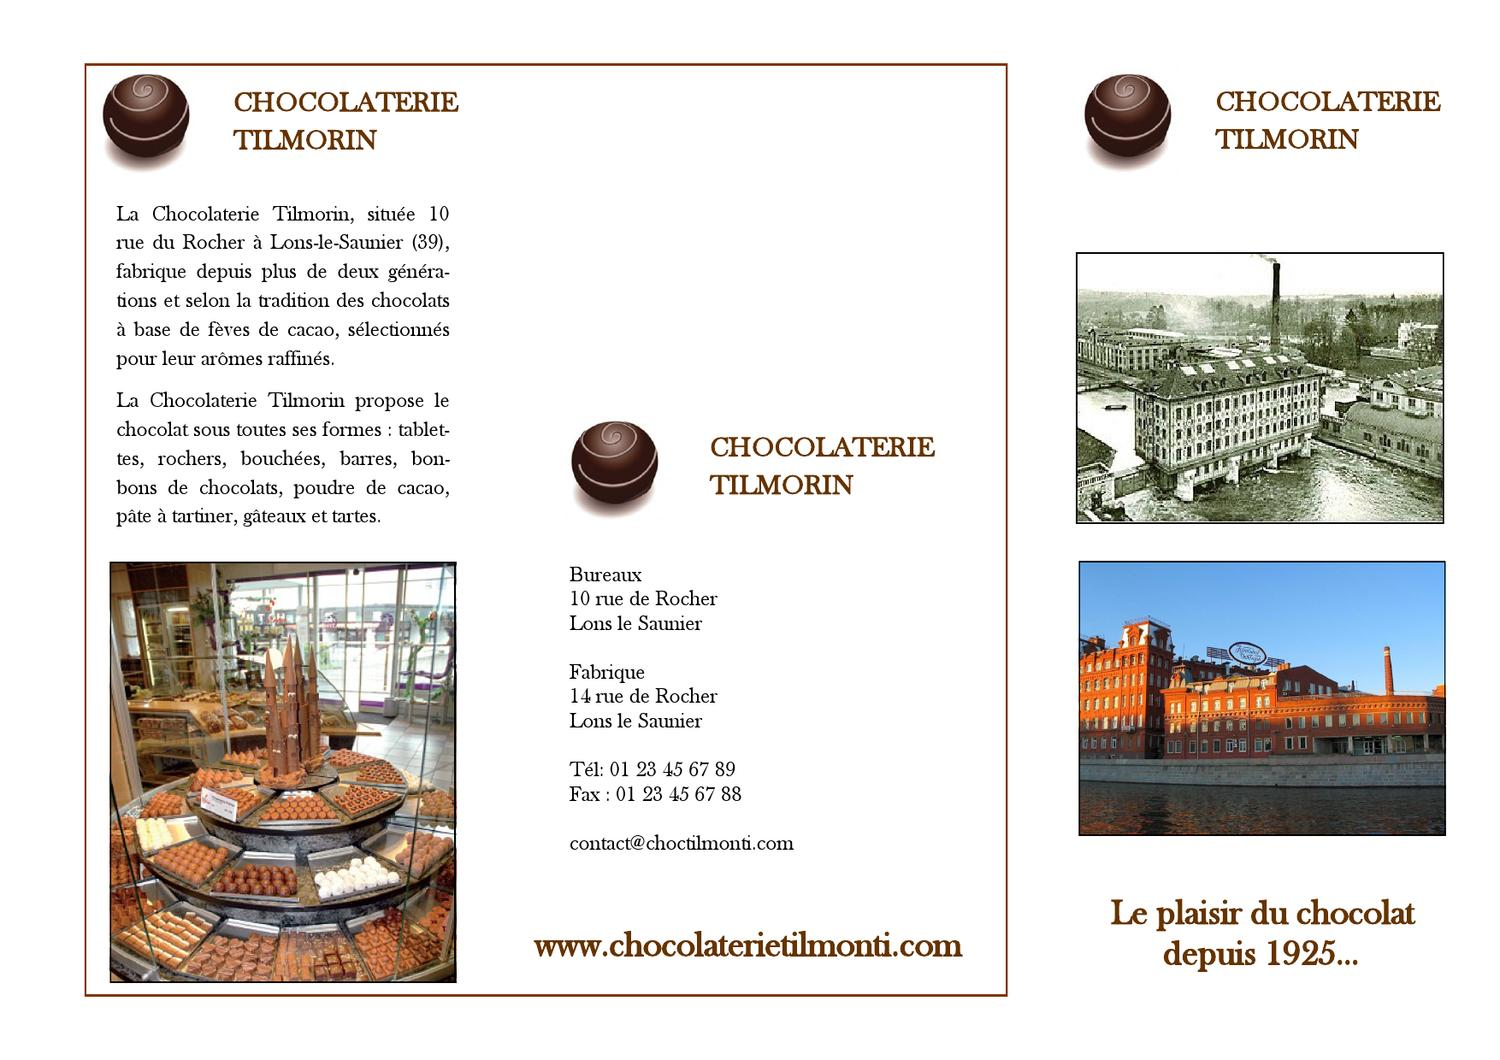 présentation chocolaterie Tilmorin by Almudena Olmo - issuu